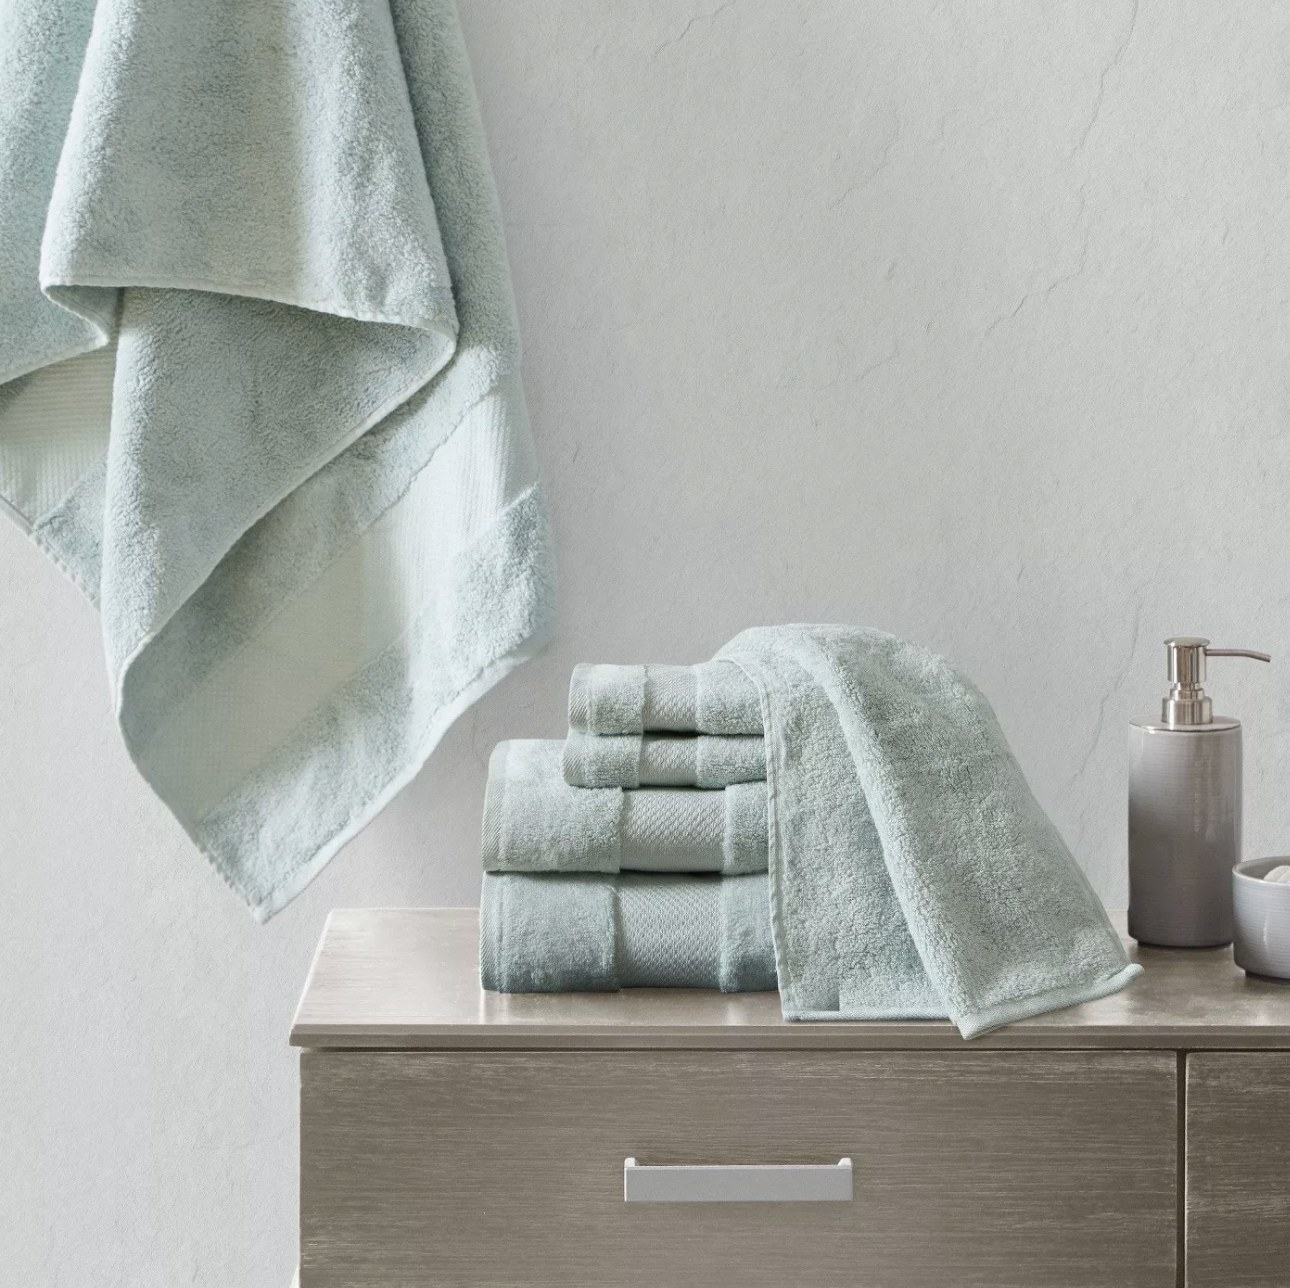 Set of bath towels on bathroom counter